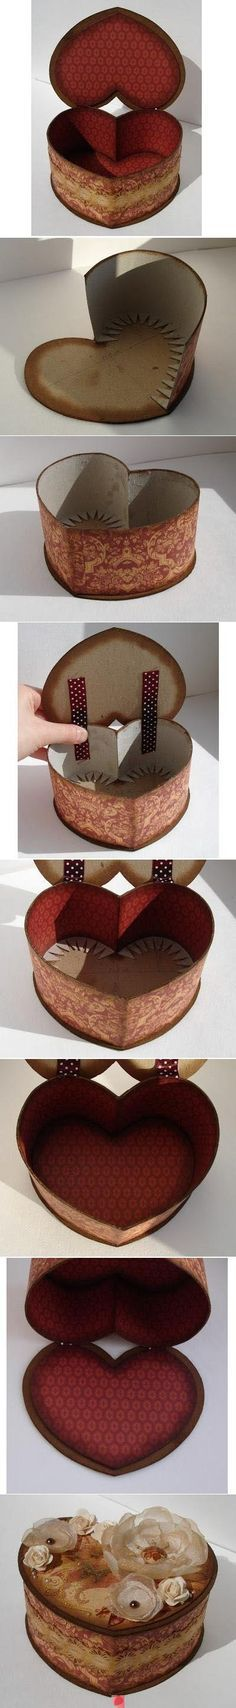 DIY Heart container